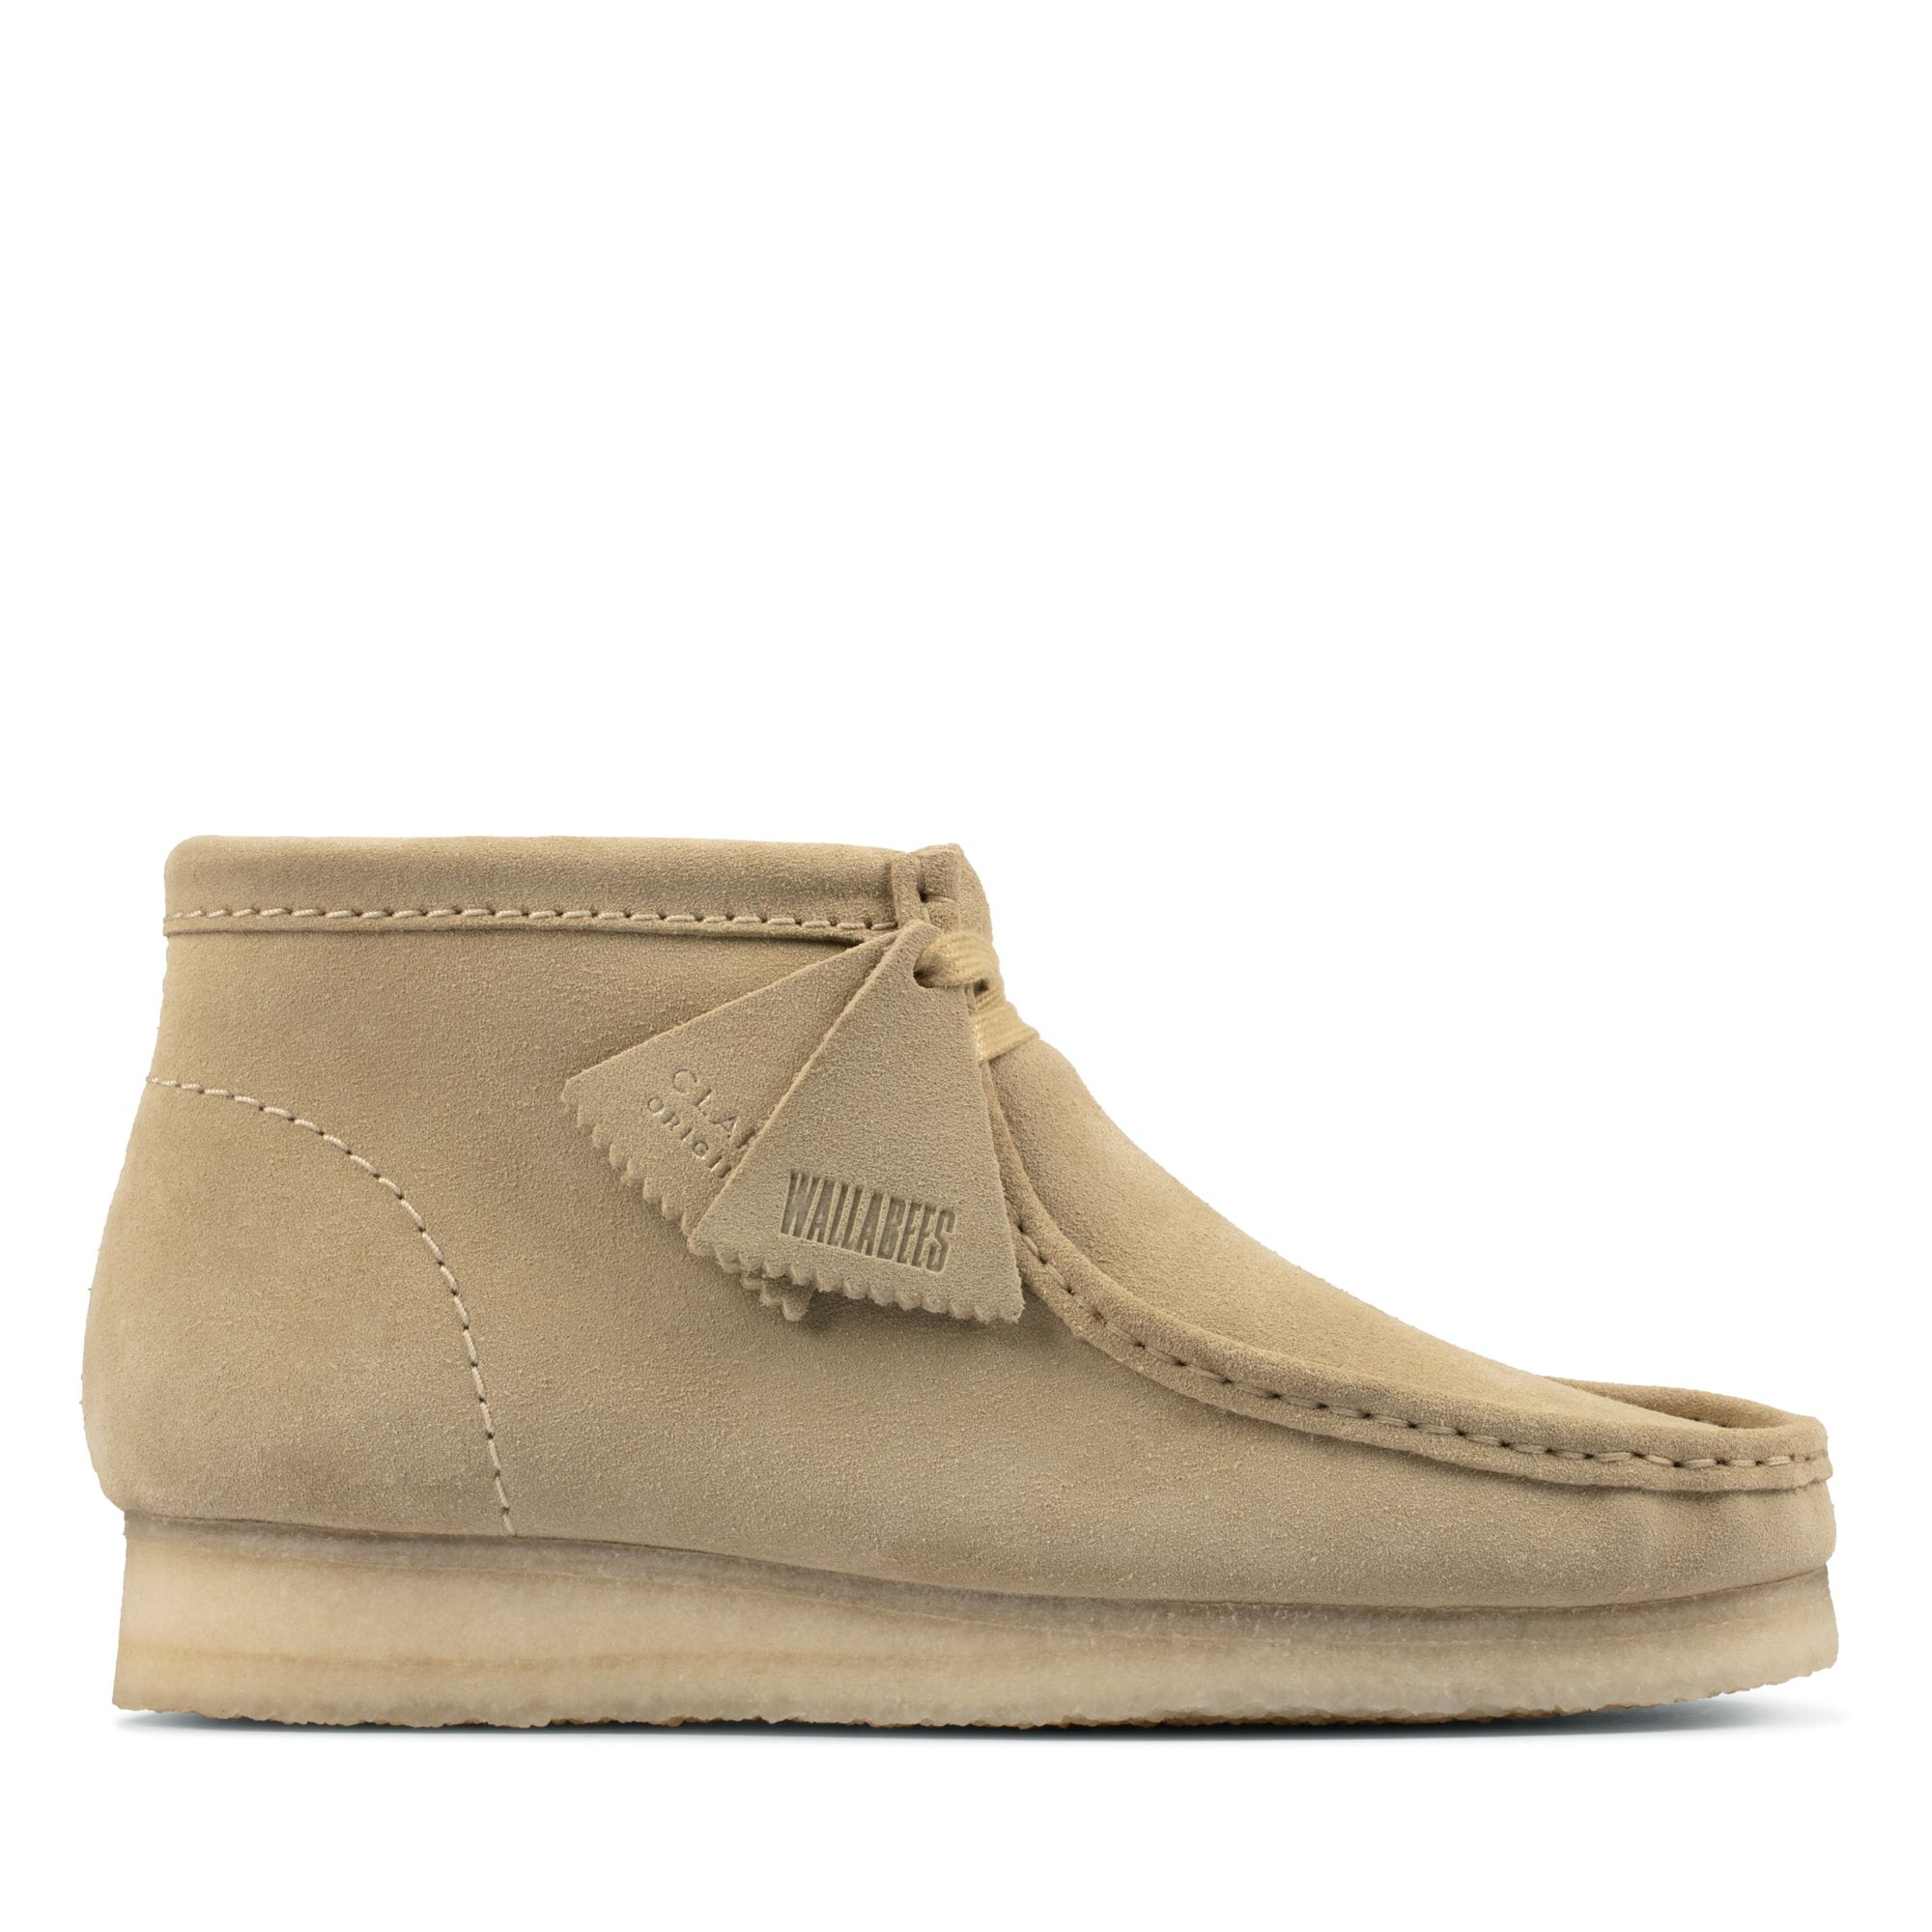 Clarks Wallabee Boot – Suede